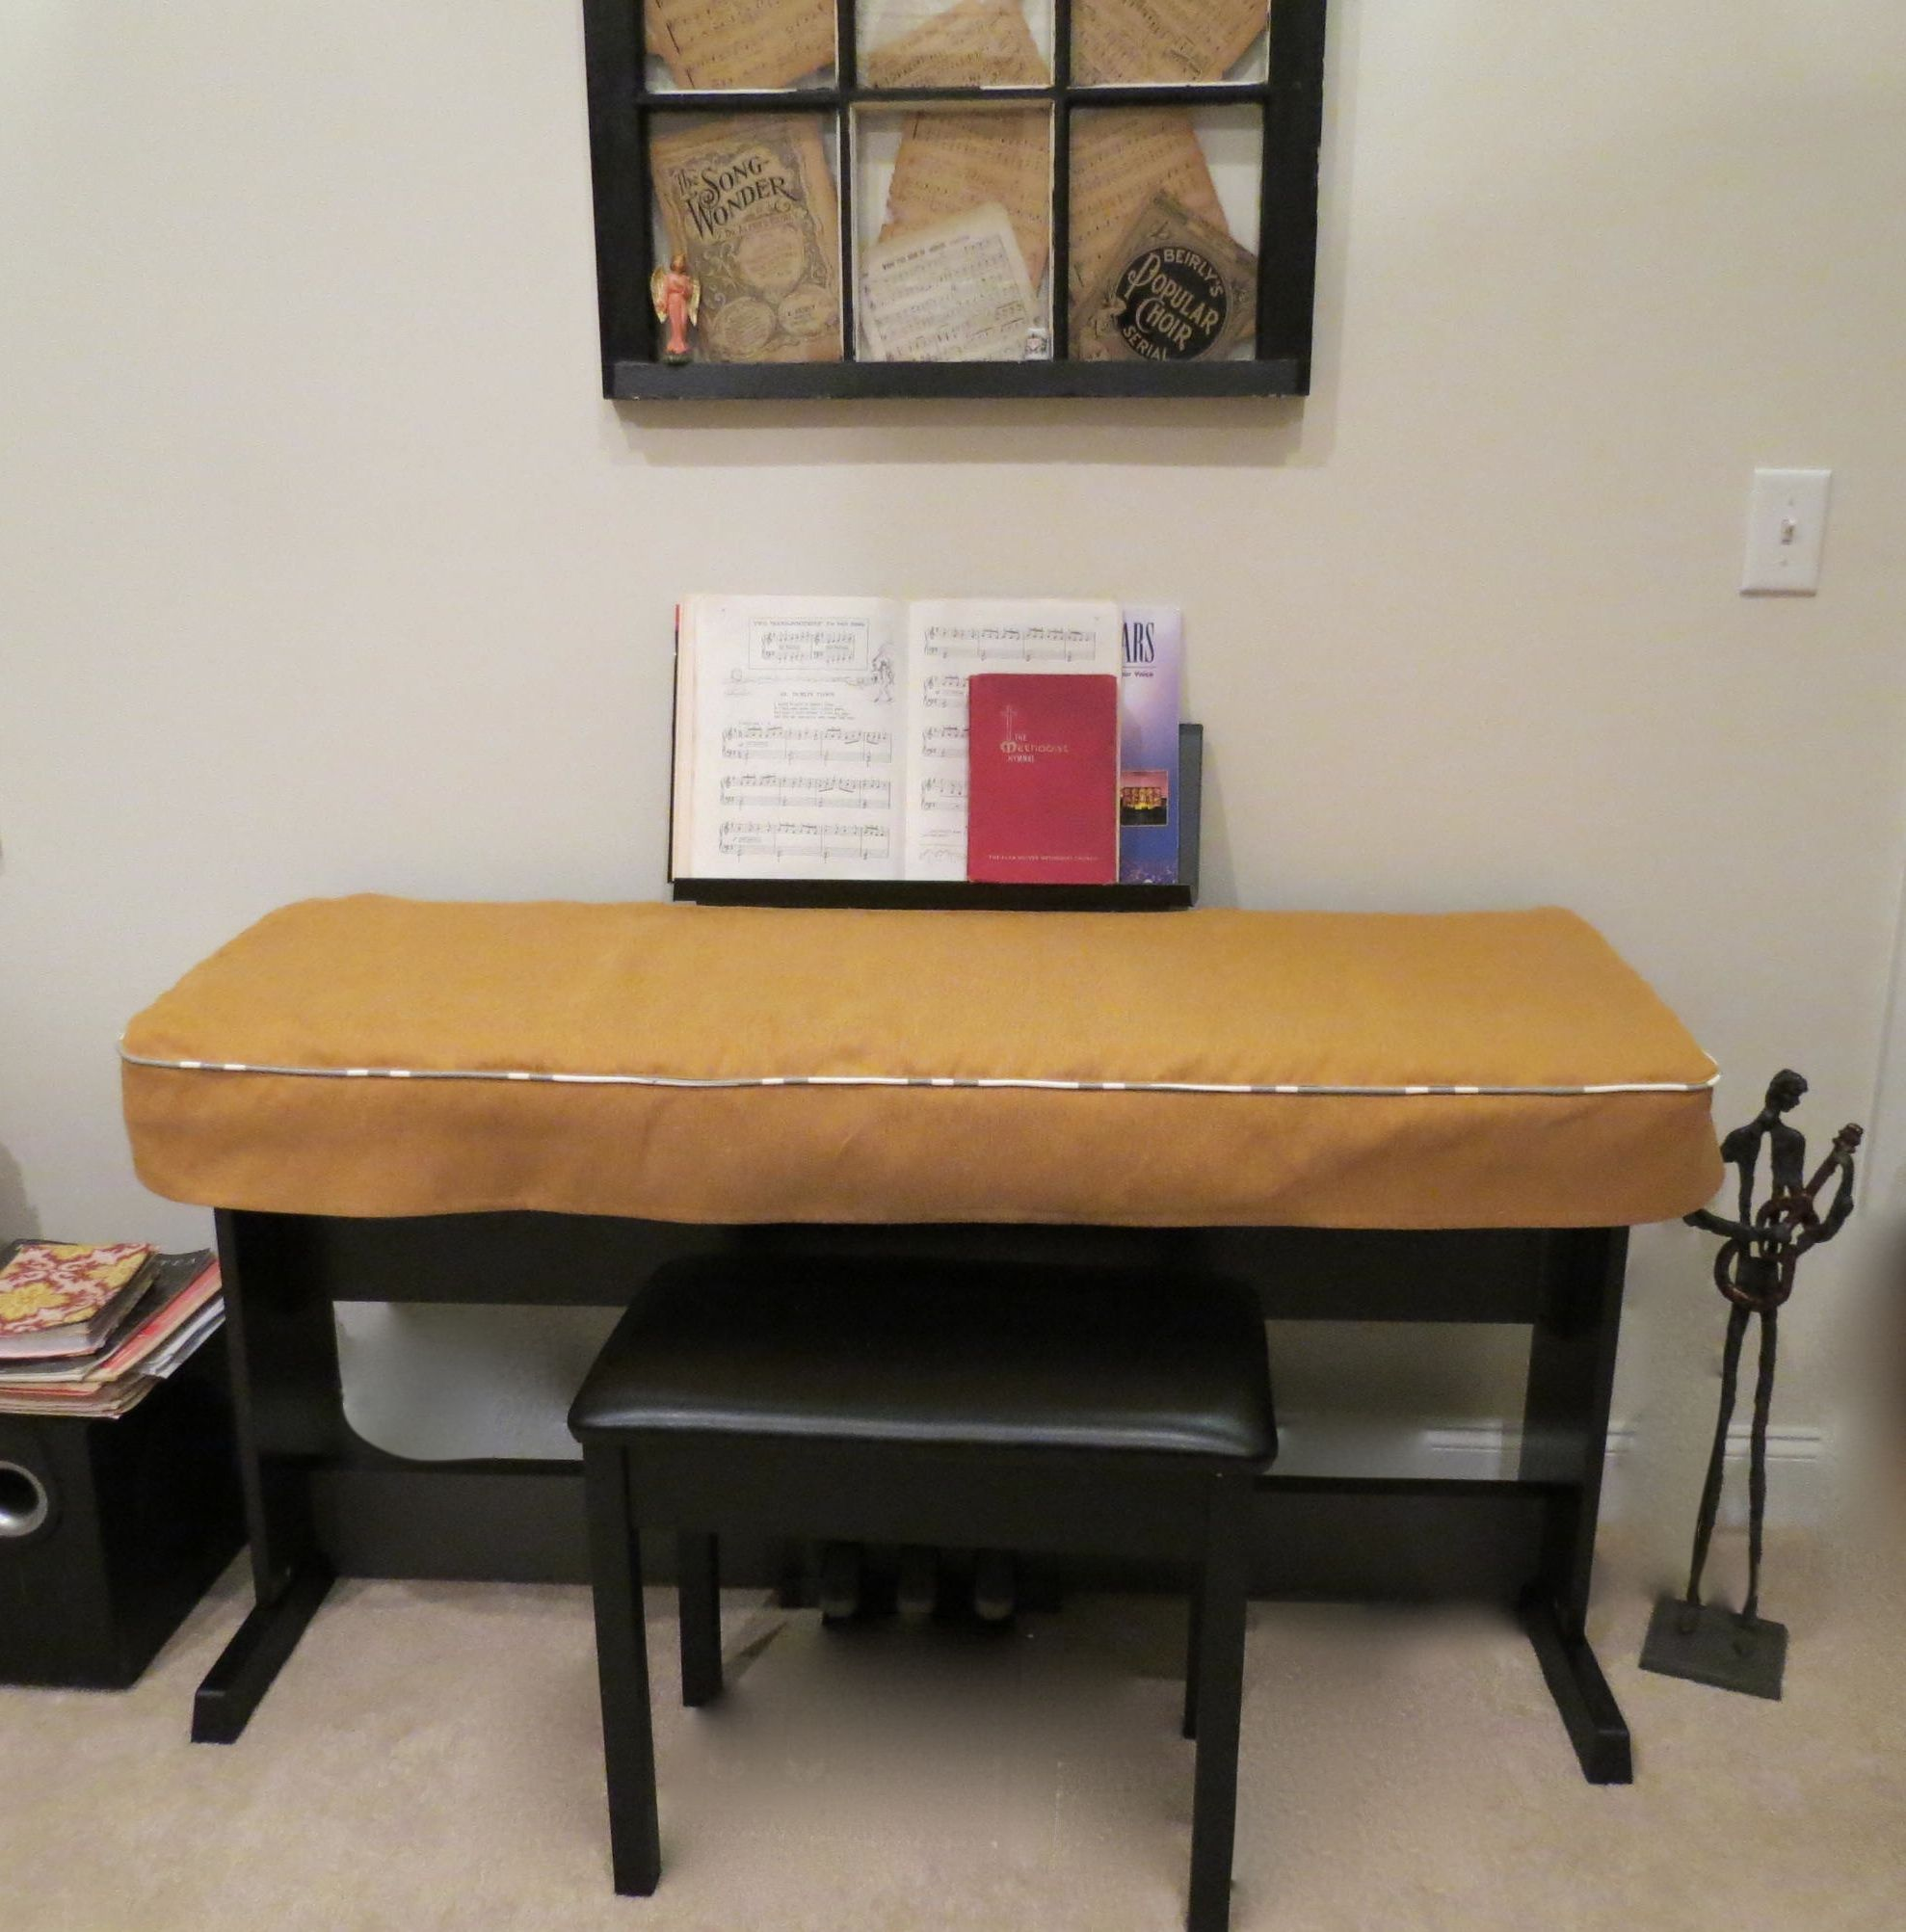 Electric Piano Keyboard Cover Made out of Textured Upholstery